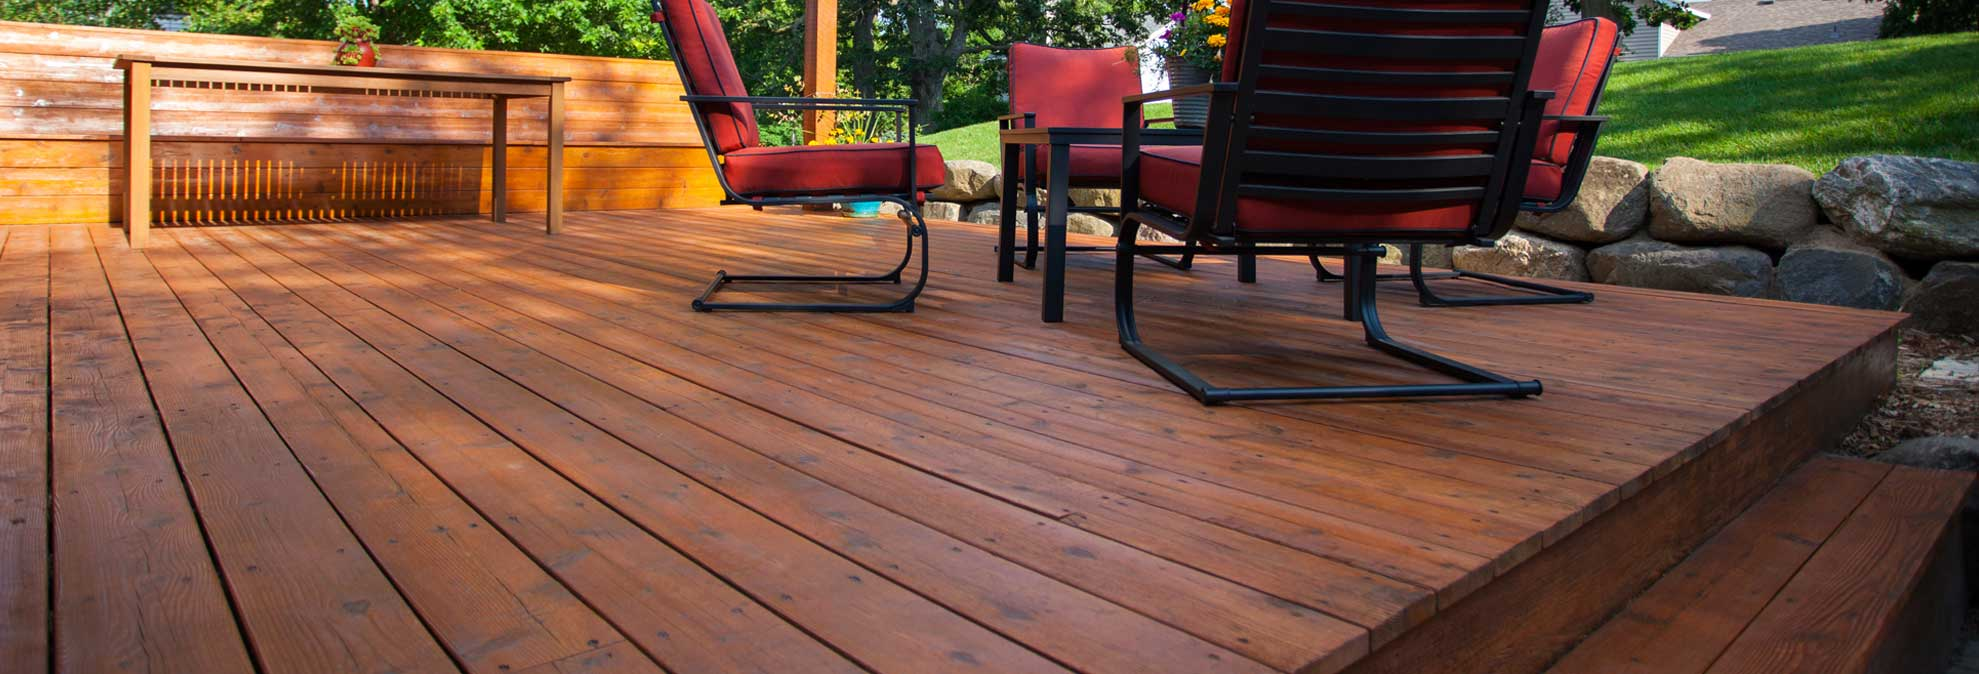 Composite Timber Decking, Treated Pine Deck, Hardwood Screens